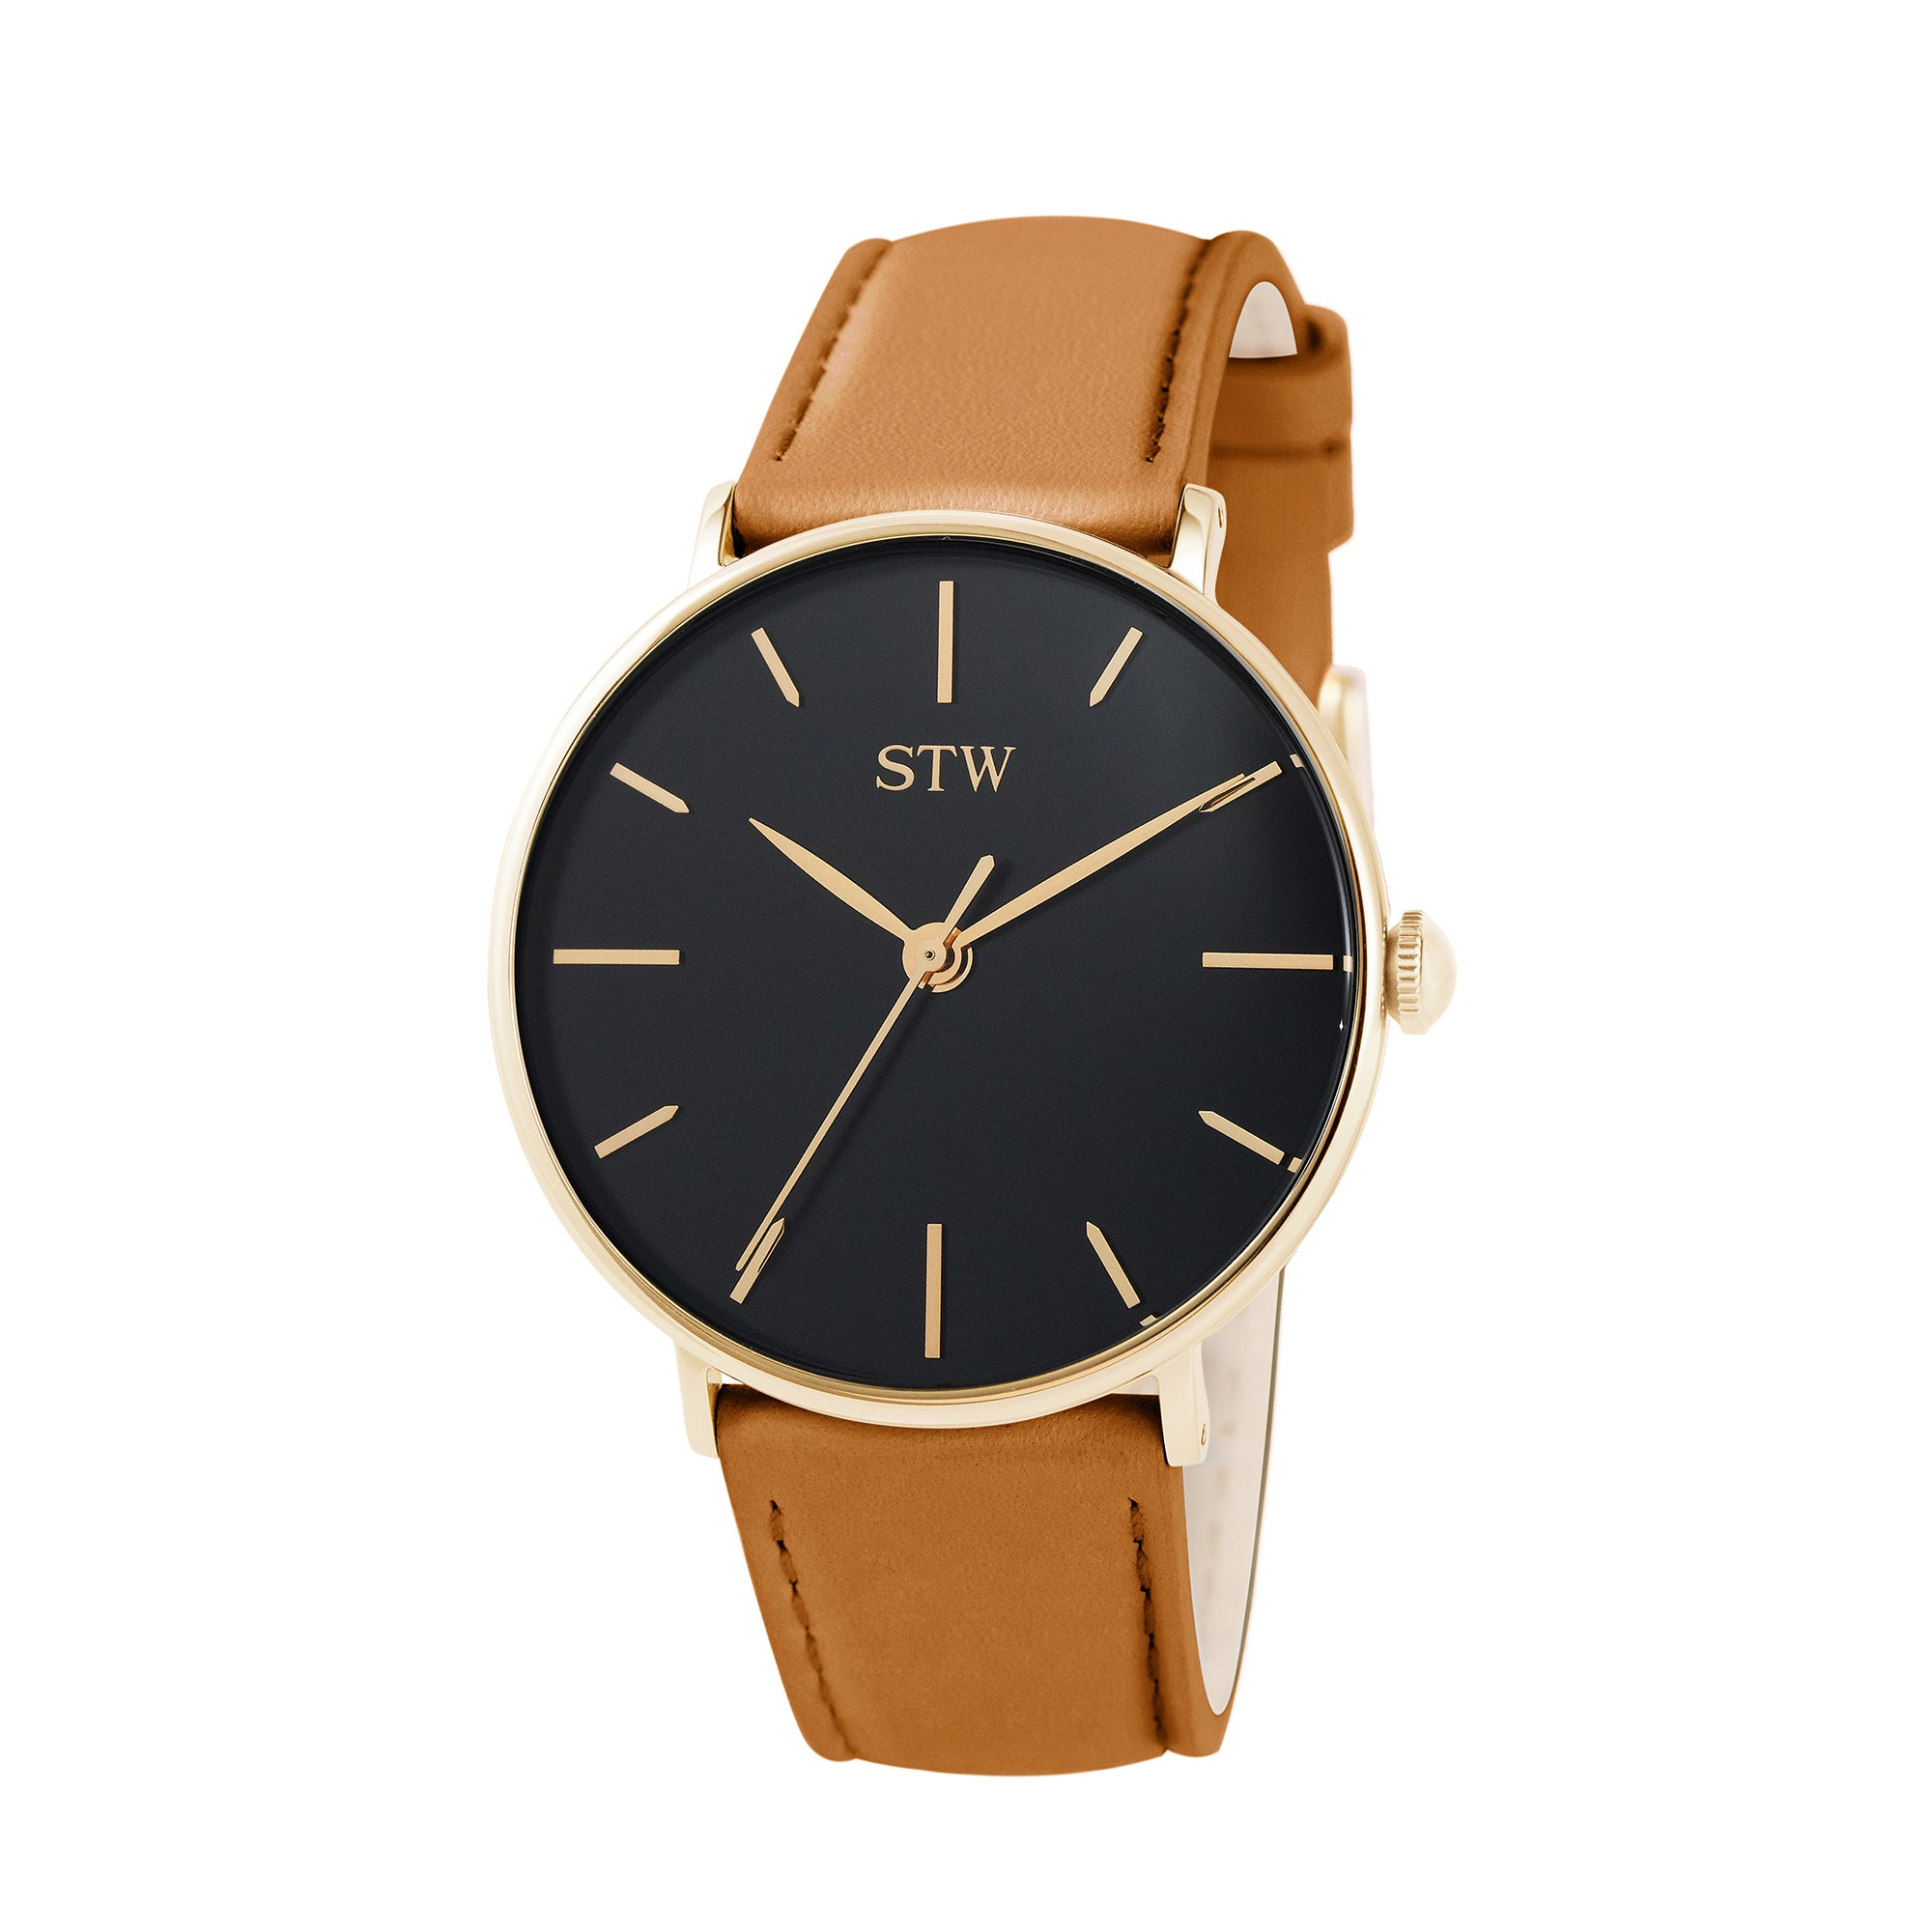 THE HERITAGE -  BLACK DIAL / OLIVE LEATHER STRAP WATCH